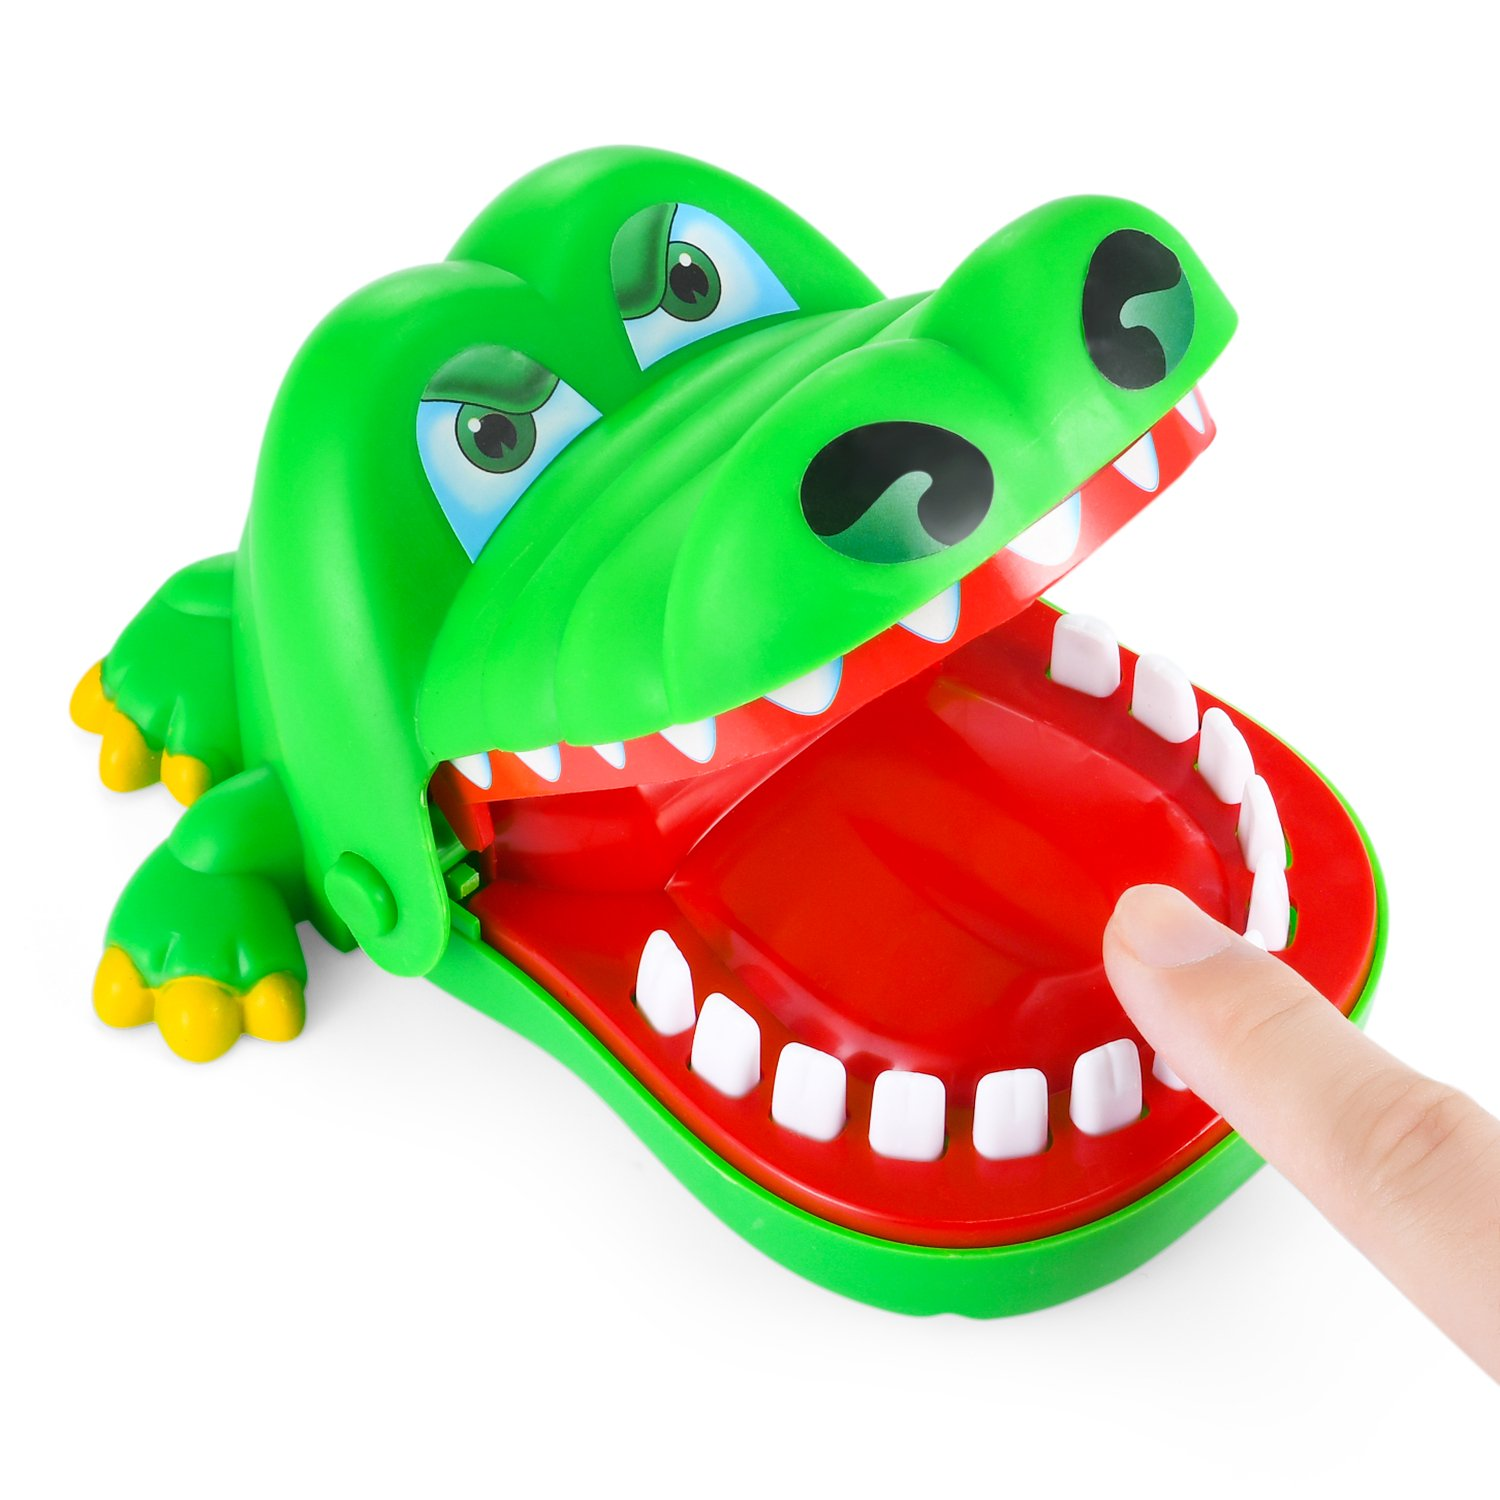 Crocodile Dentist - Parmeic Dinosaur bite finger game Novelty toy For Kids - 1 to 4 Players - Ages 4 and Up